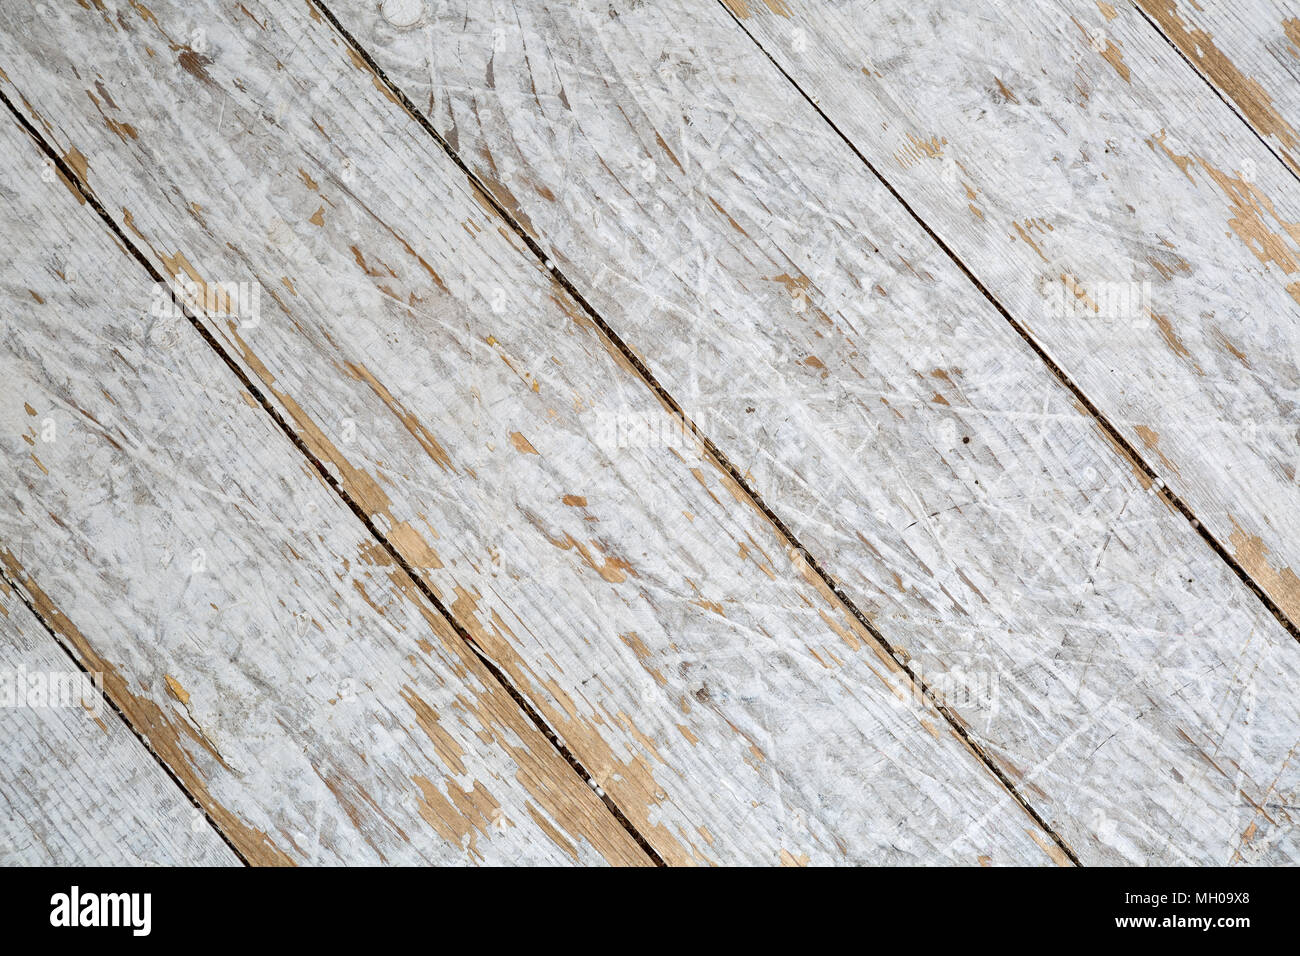 Textured wooden background in white paint diagonal panels Stock